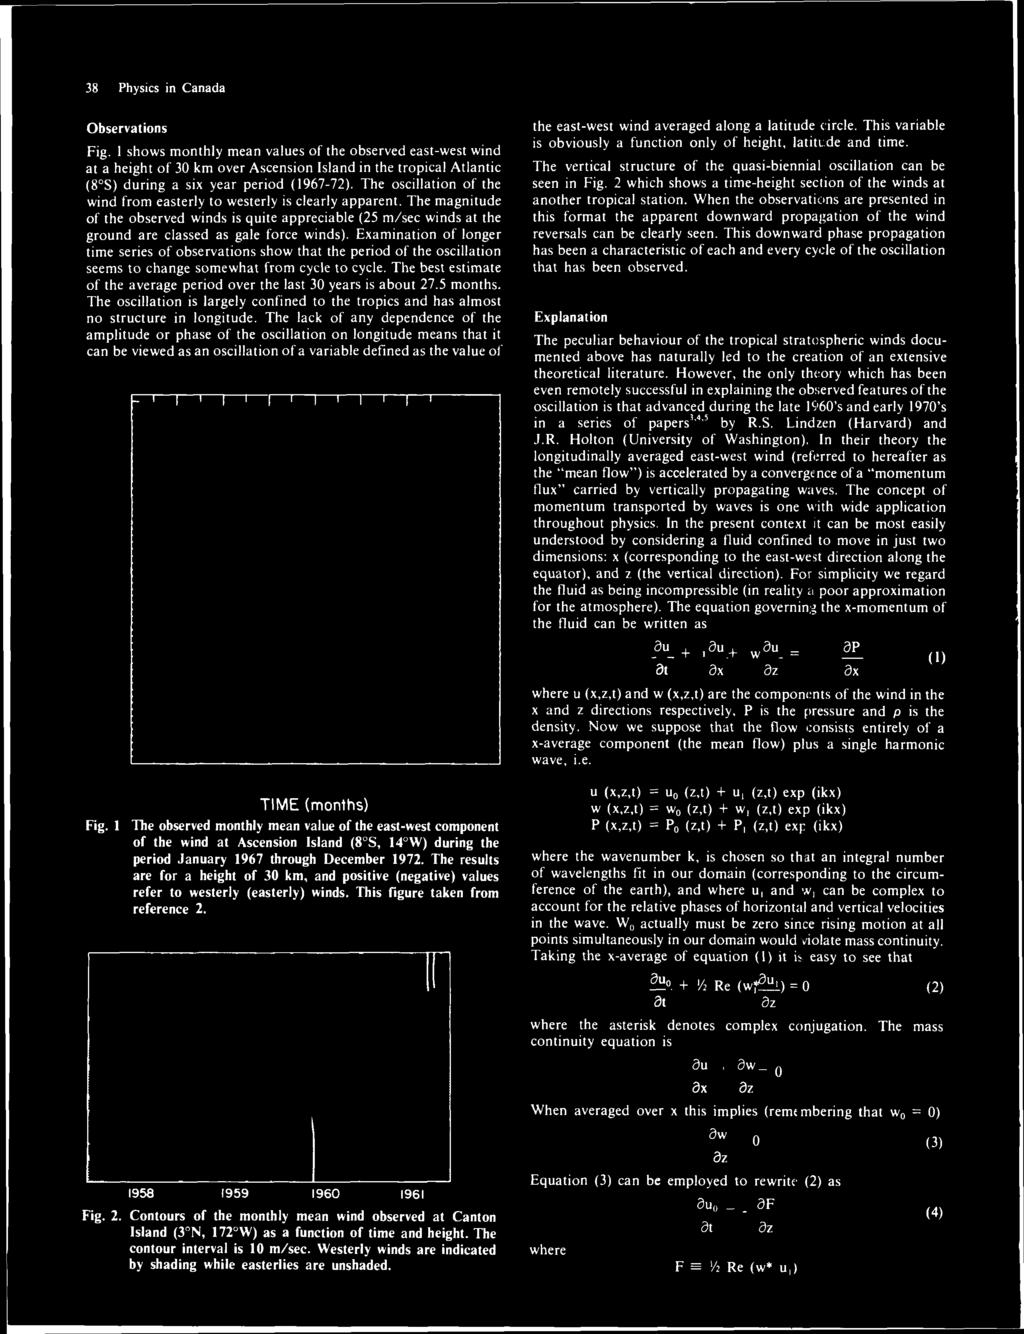 The bulletin of the canadian association of physicists vol 39 no 38 physics in canada observations fig fandeluxe Images